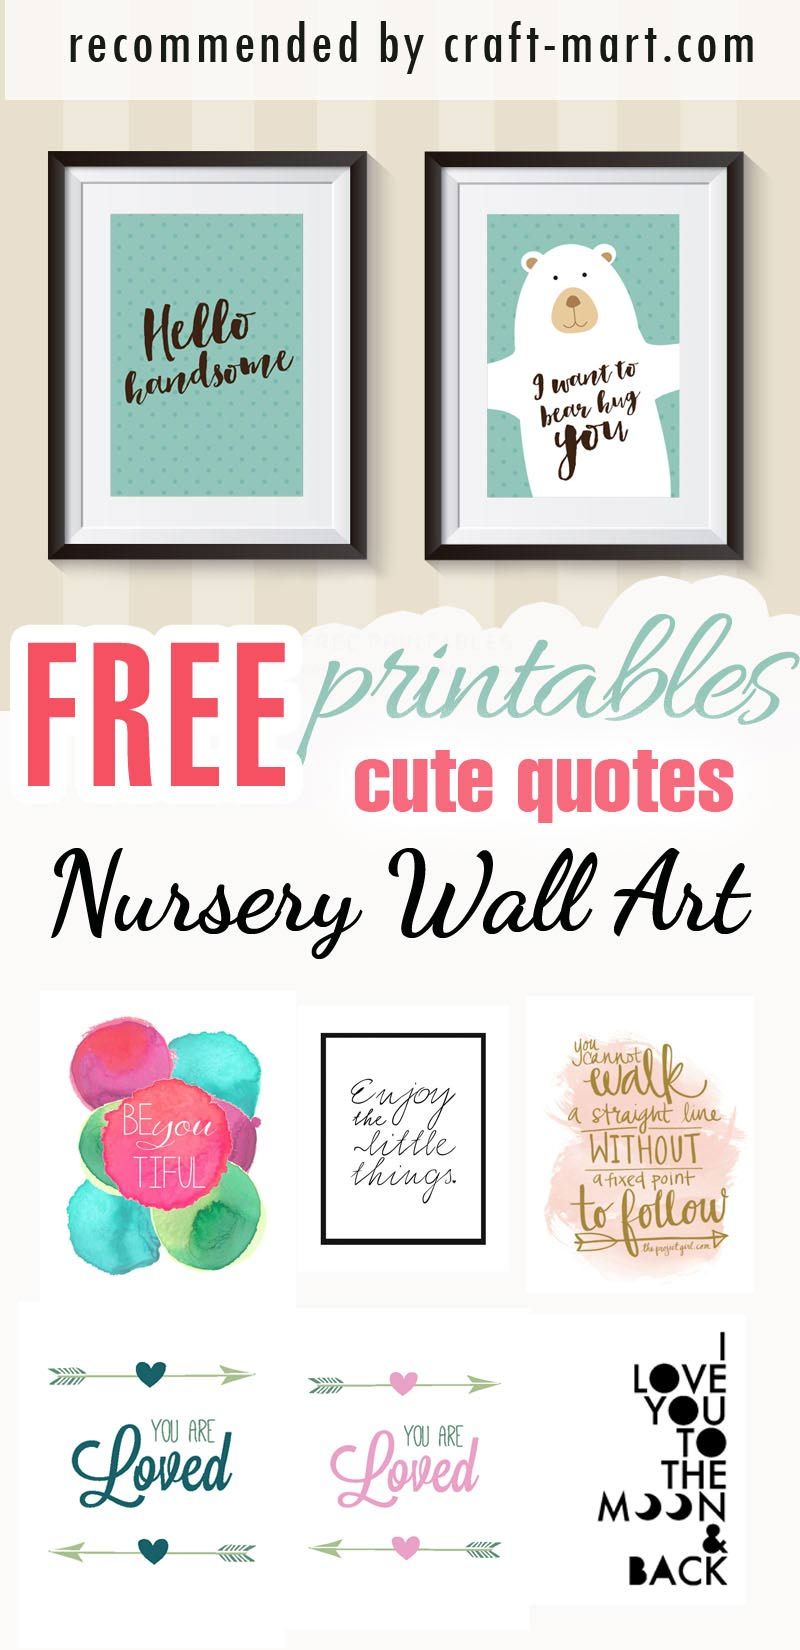 photo relating to Free Printable Art titled 100+ Perfect No cost Nursery Printables and Wall Artwork - Craft-Mart